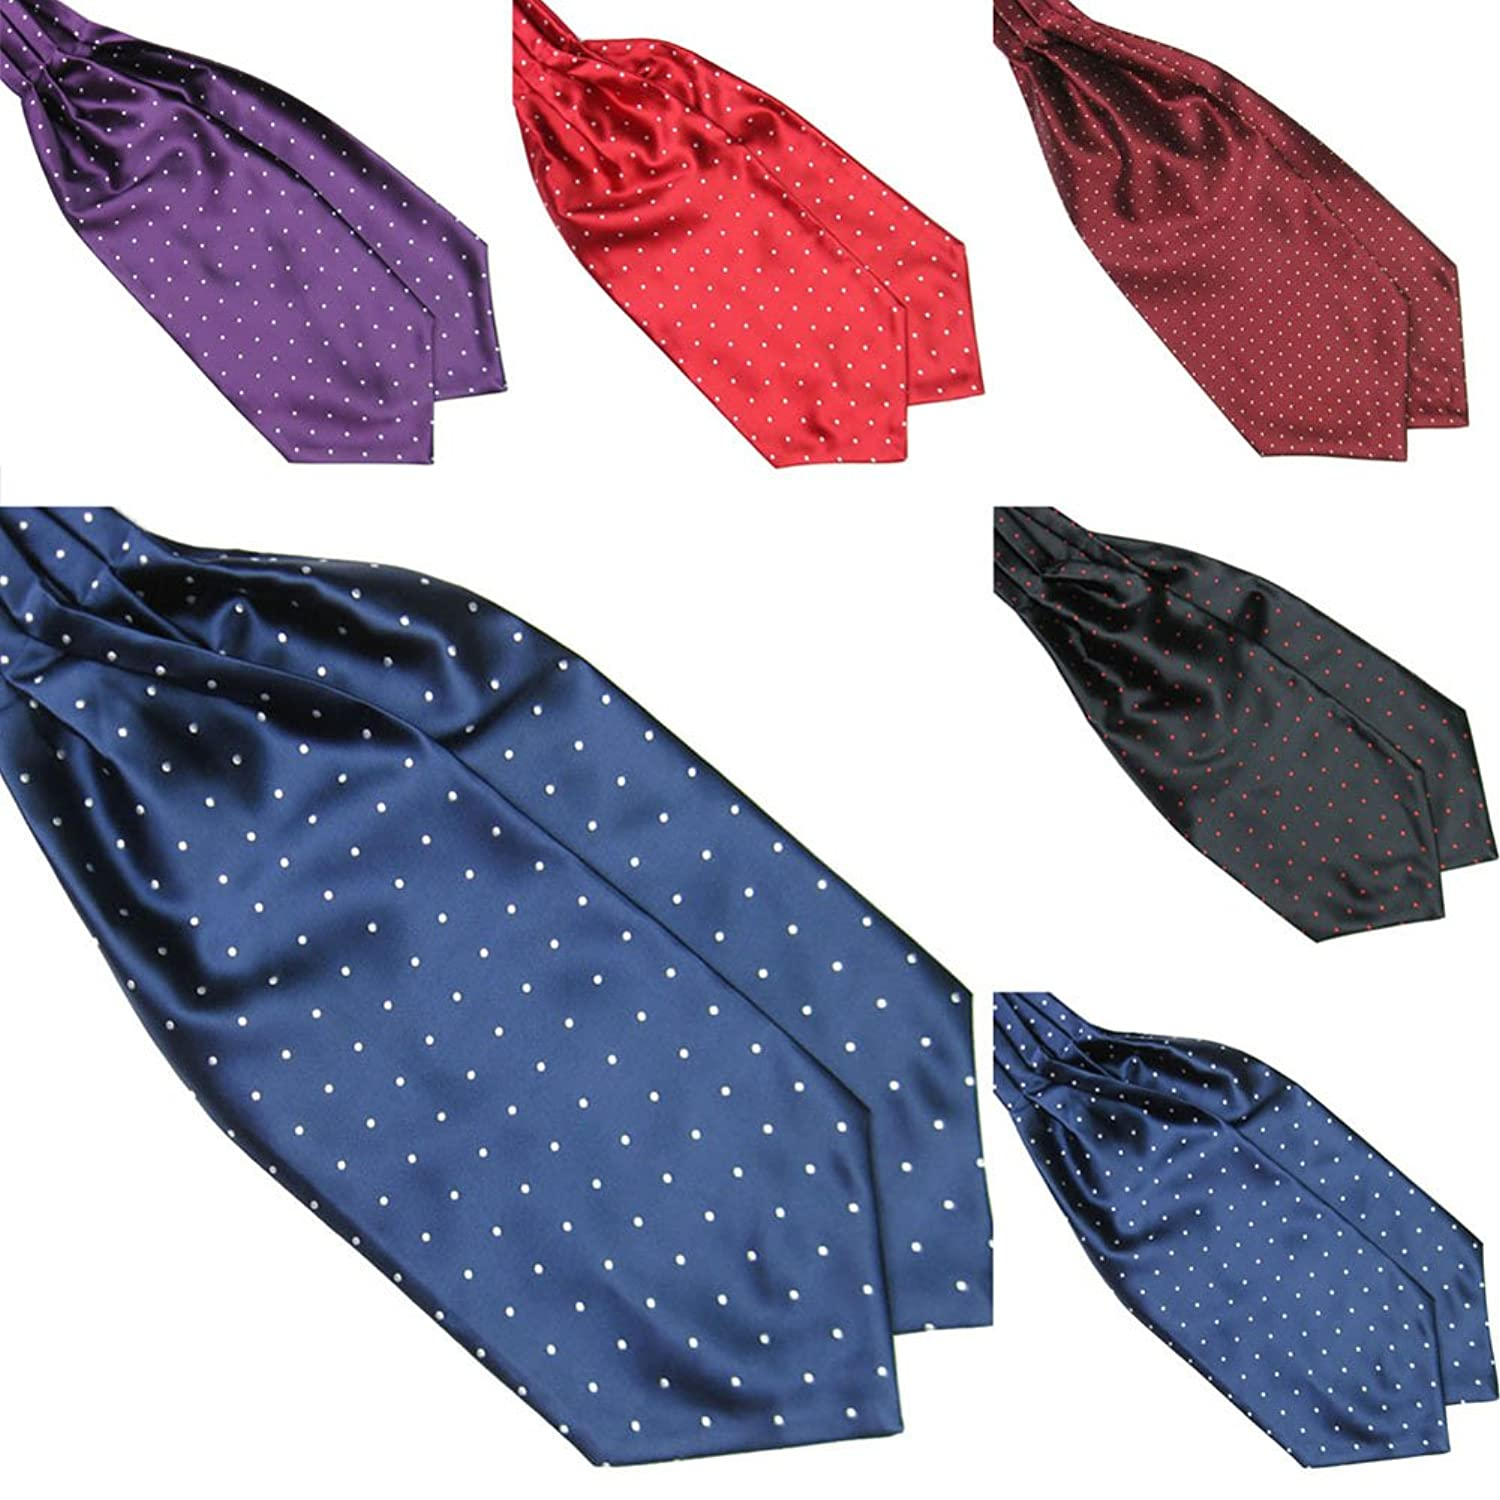 Men's Steampunk Clothing, Costumes, Fashion Froomer Mens Ascot Blend Polka Dot Ties Silk Cravat $4.99 AT vintagedancer.com